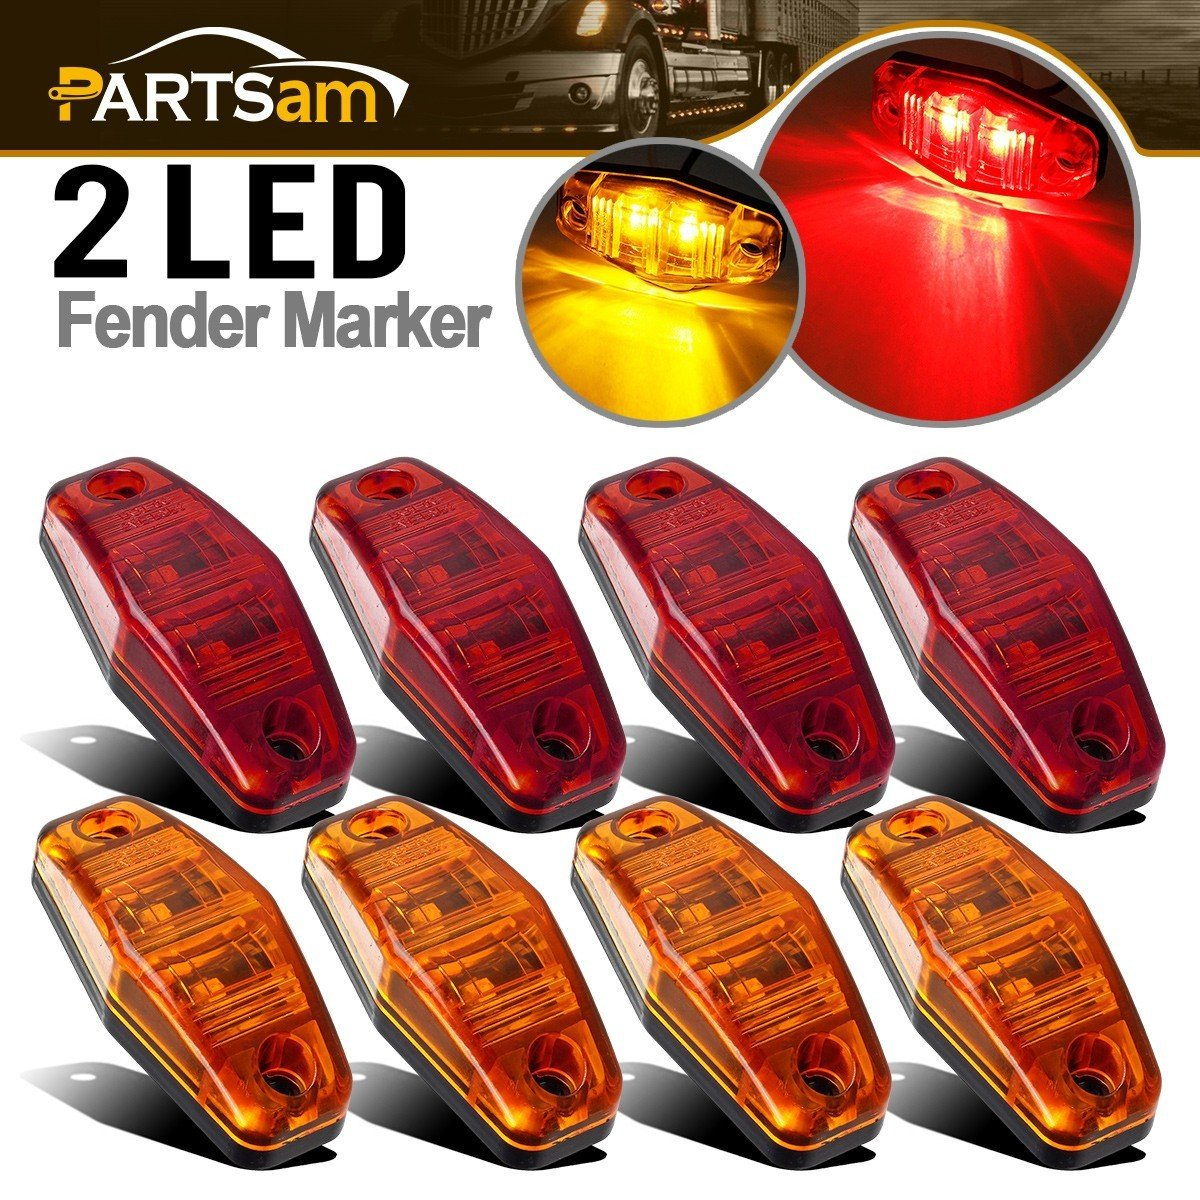 Partsam Universal Red/Amber Surface Mount LED Side Fender Marker Lights, Sealed Mini LED Side Marker Clearance Identification Lights, 2 Wire, 2 Diodes, 2.54'' x 1.06'' (Pack of 8)